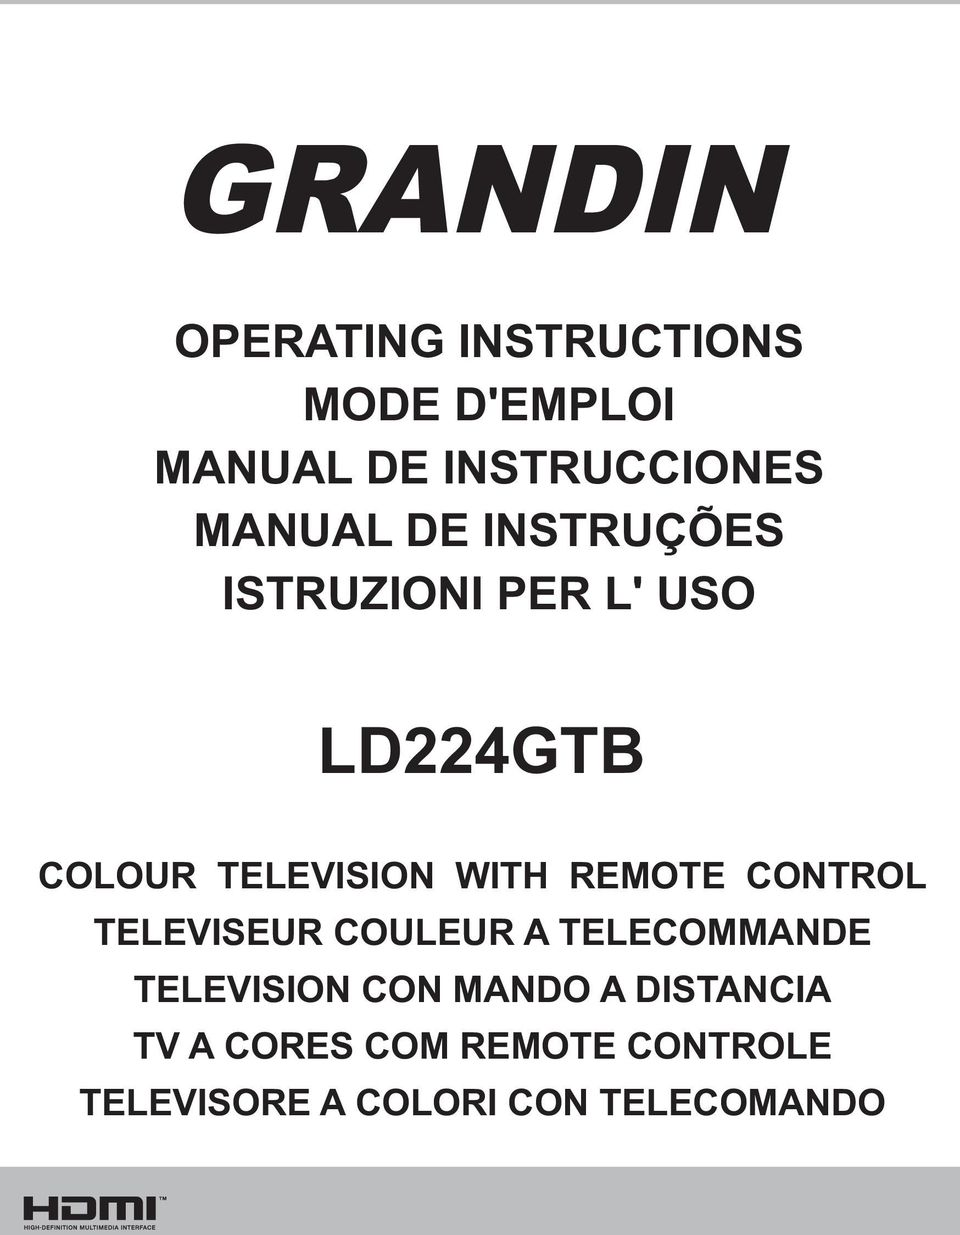 WITH REMOTE CONTROL TELEVISEUR COULEUR A TELECOMMANDE TELEVISION CON